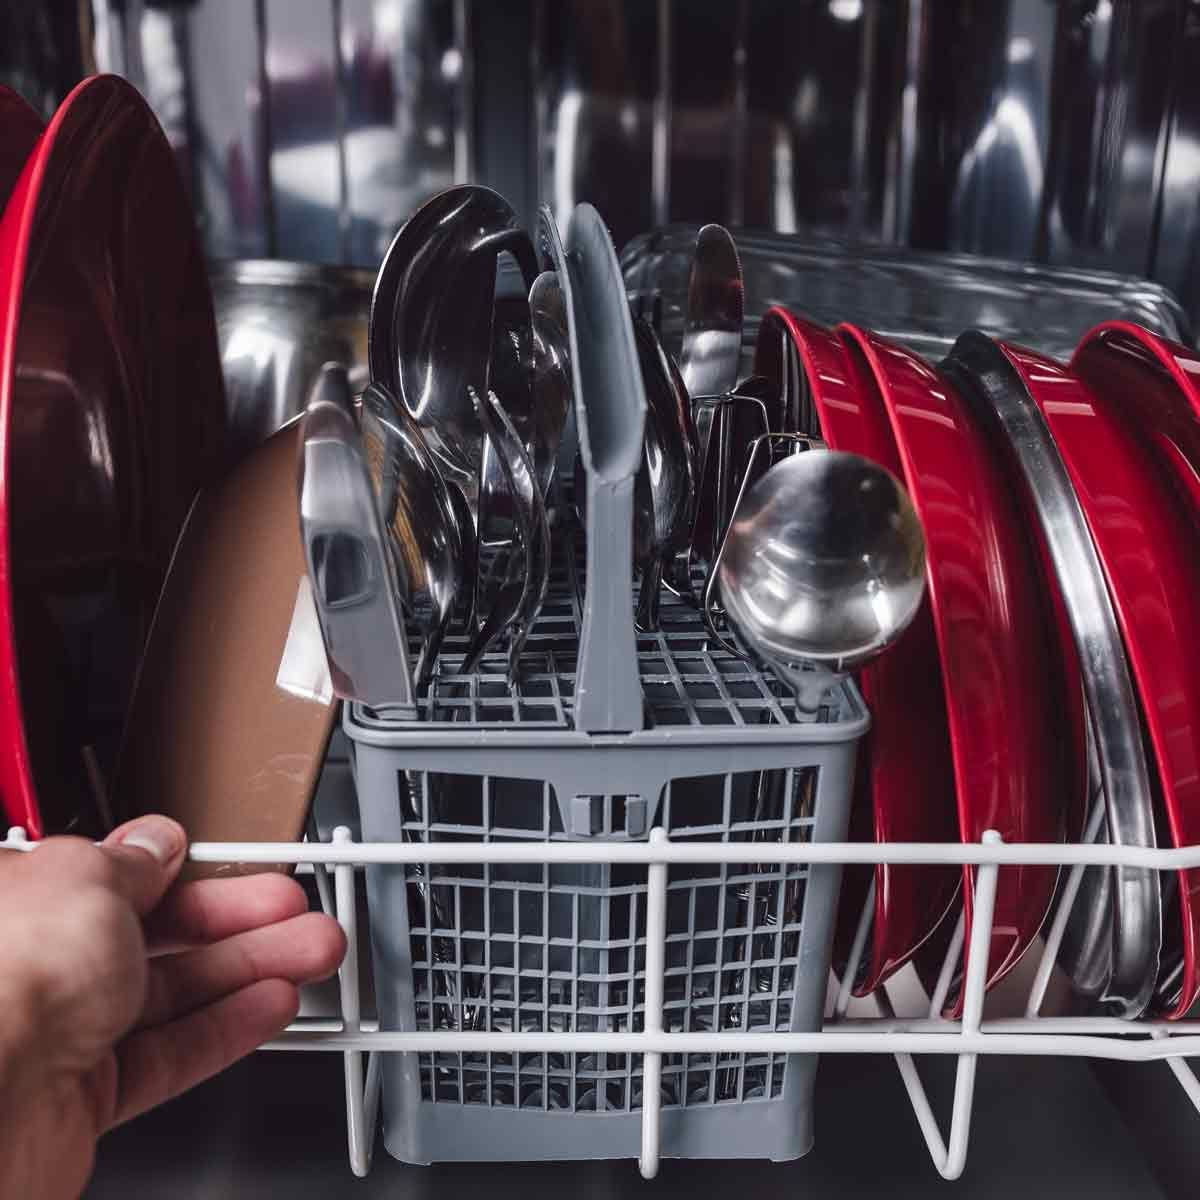 New Today Do You Have A Moldy Dishwasher Here S How To Tell And How To Fix It Metrogaragedoor Com Dishwasher Repair Cleaning Dishes Clean Dishwasher